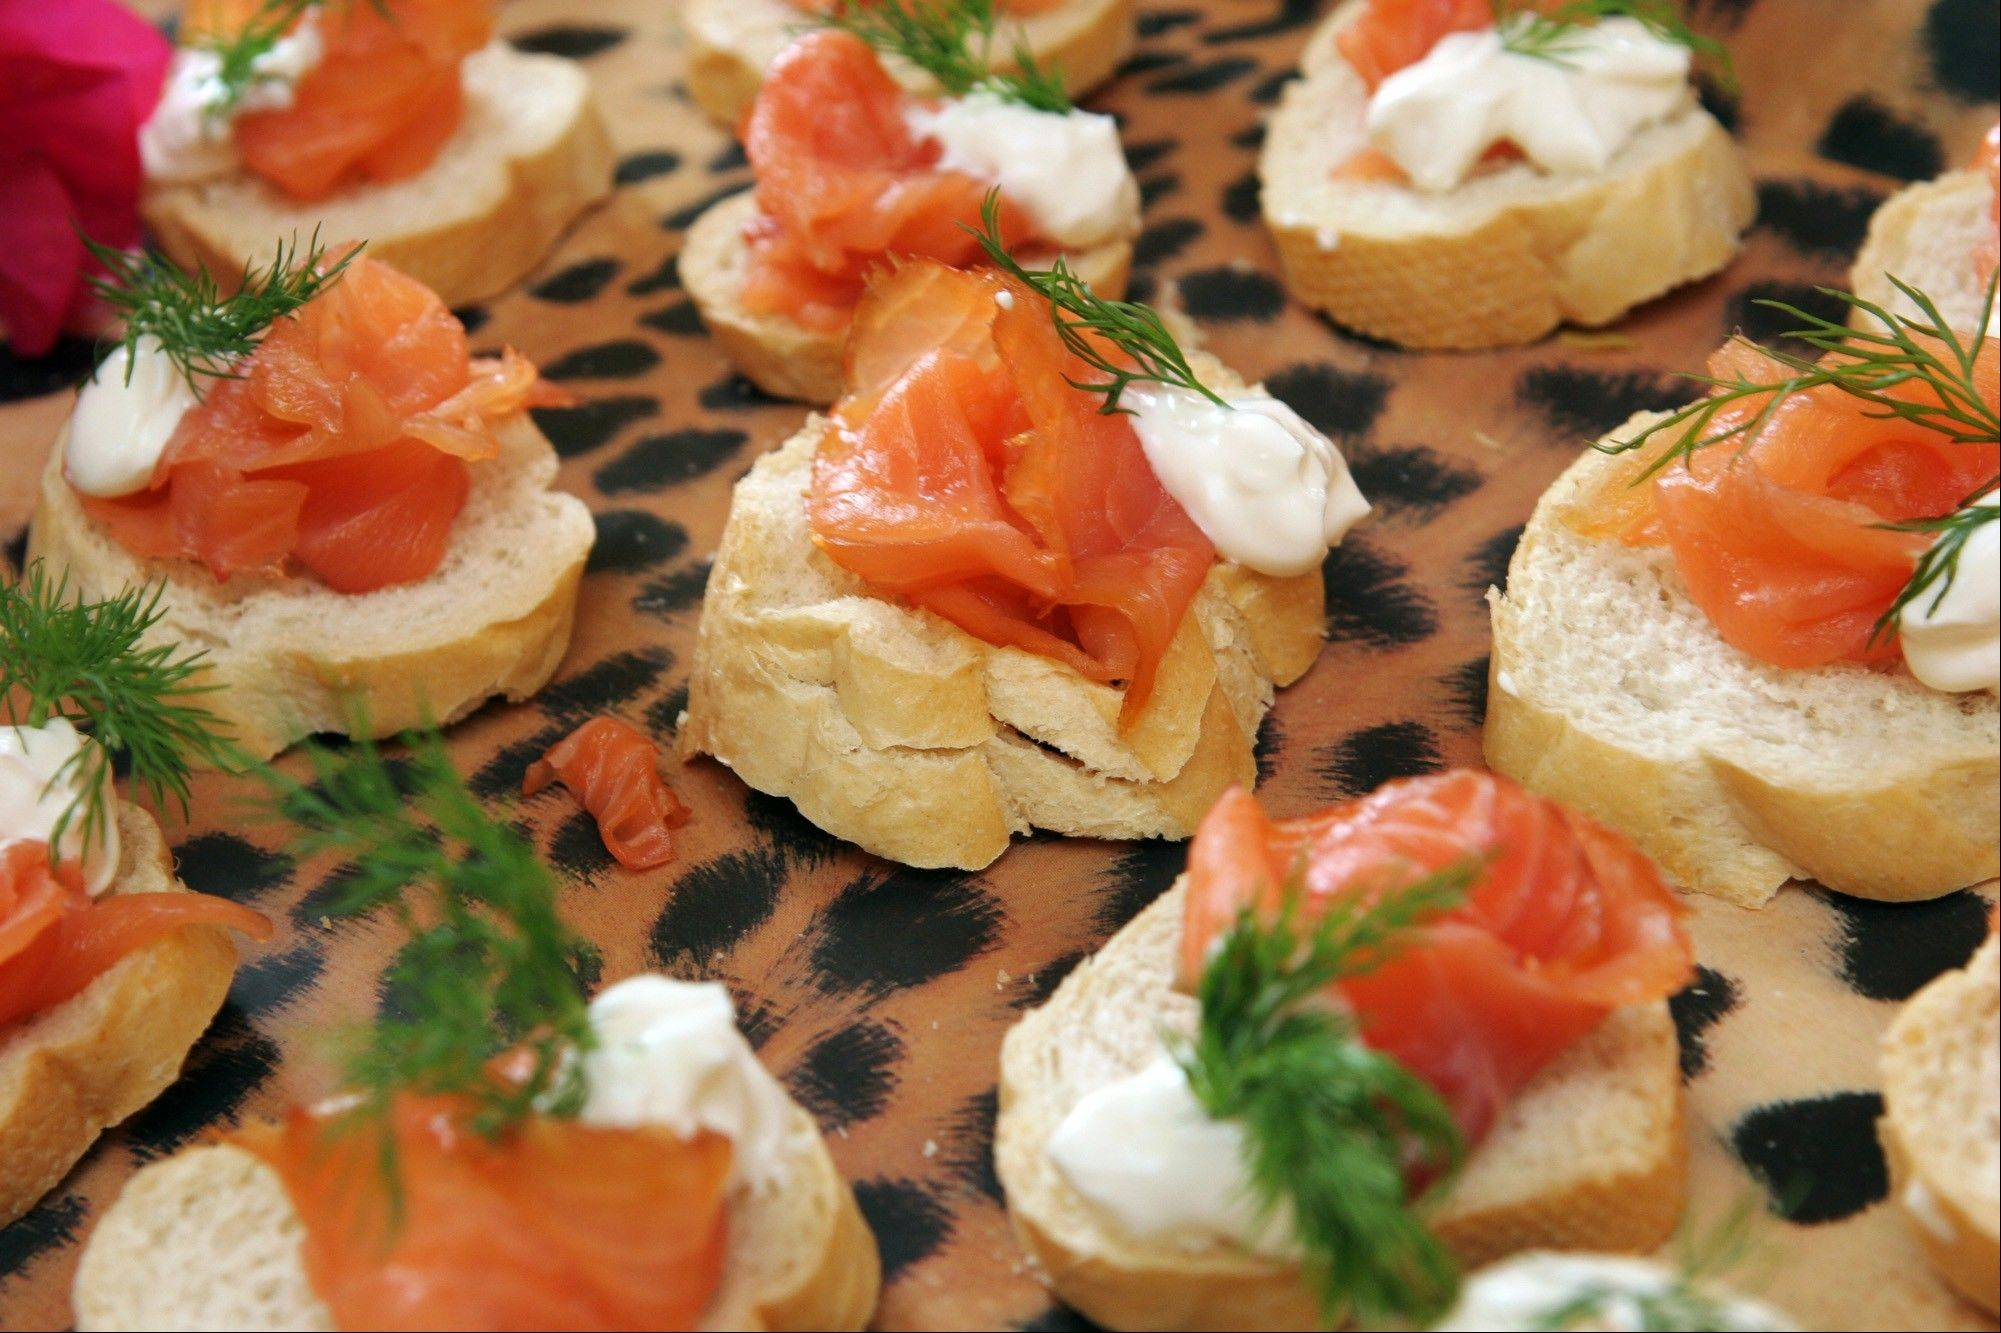 Smoked salmon on toasted rye rounds with dilled cream cheese and sour cream.